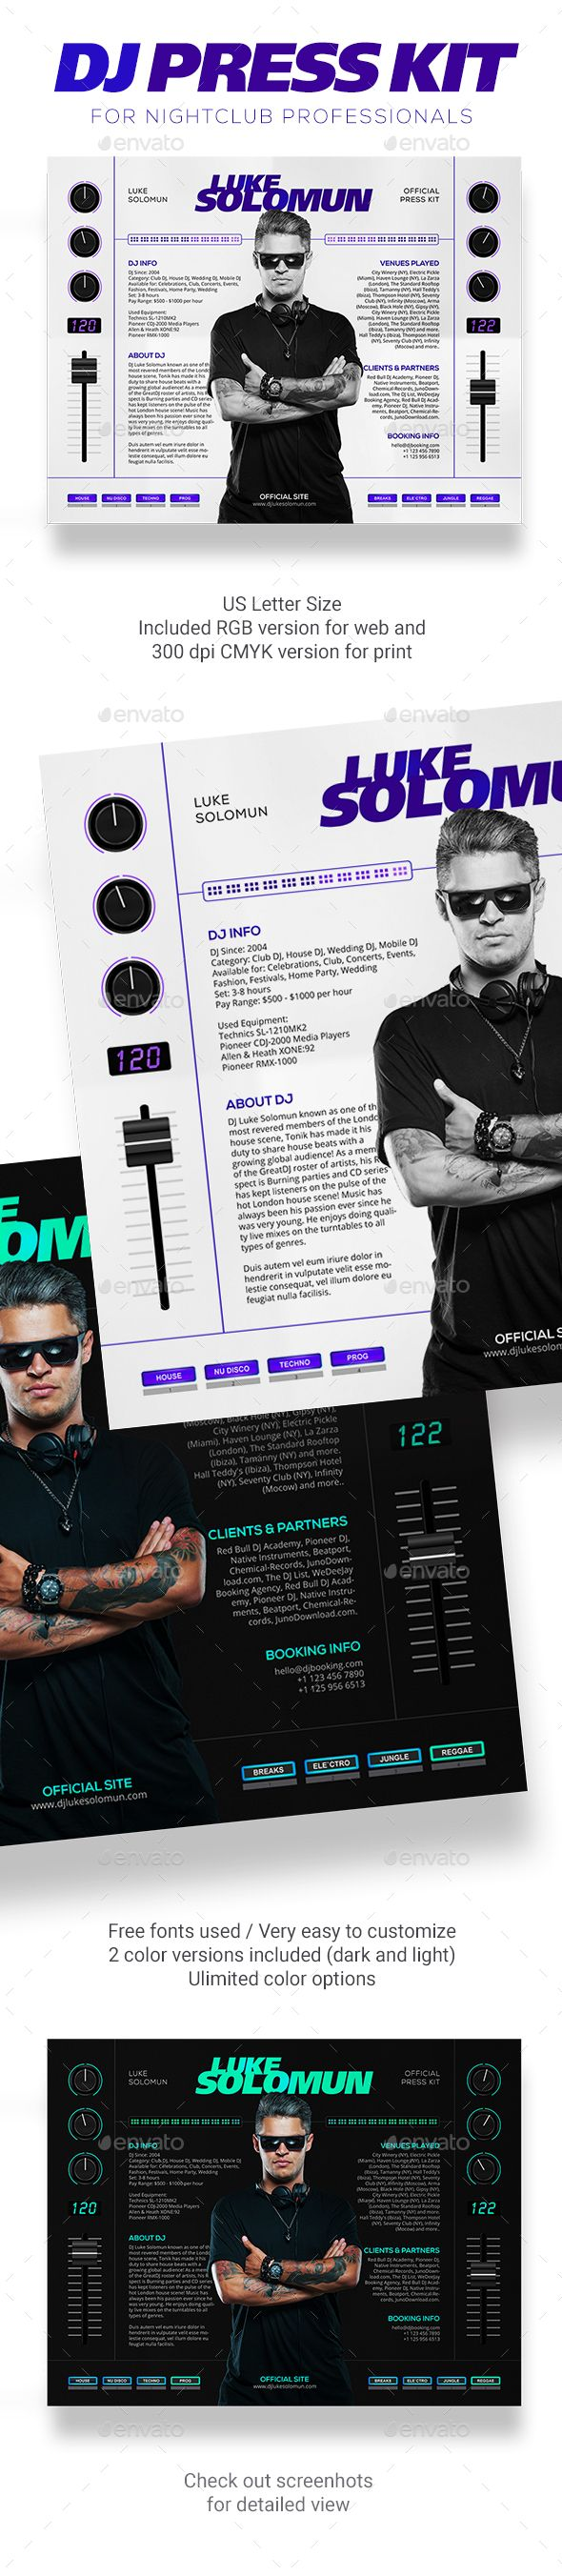 19 best dj press kit and dj resume templates images on for Dj press kit template free